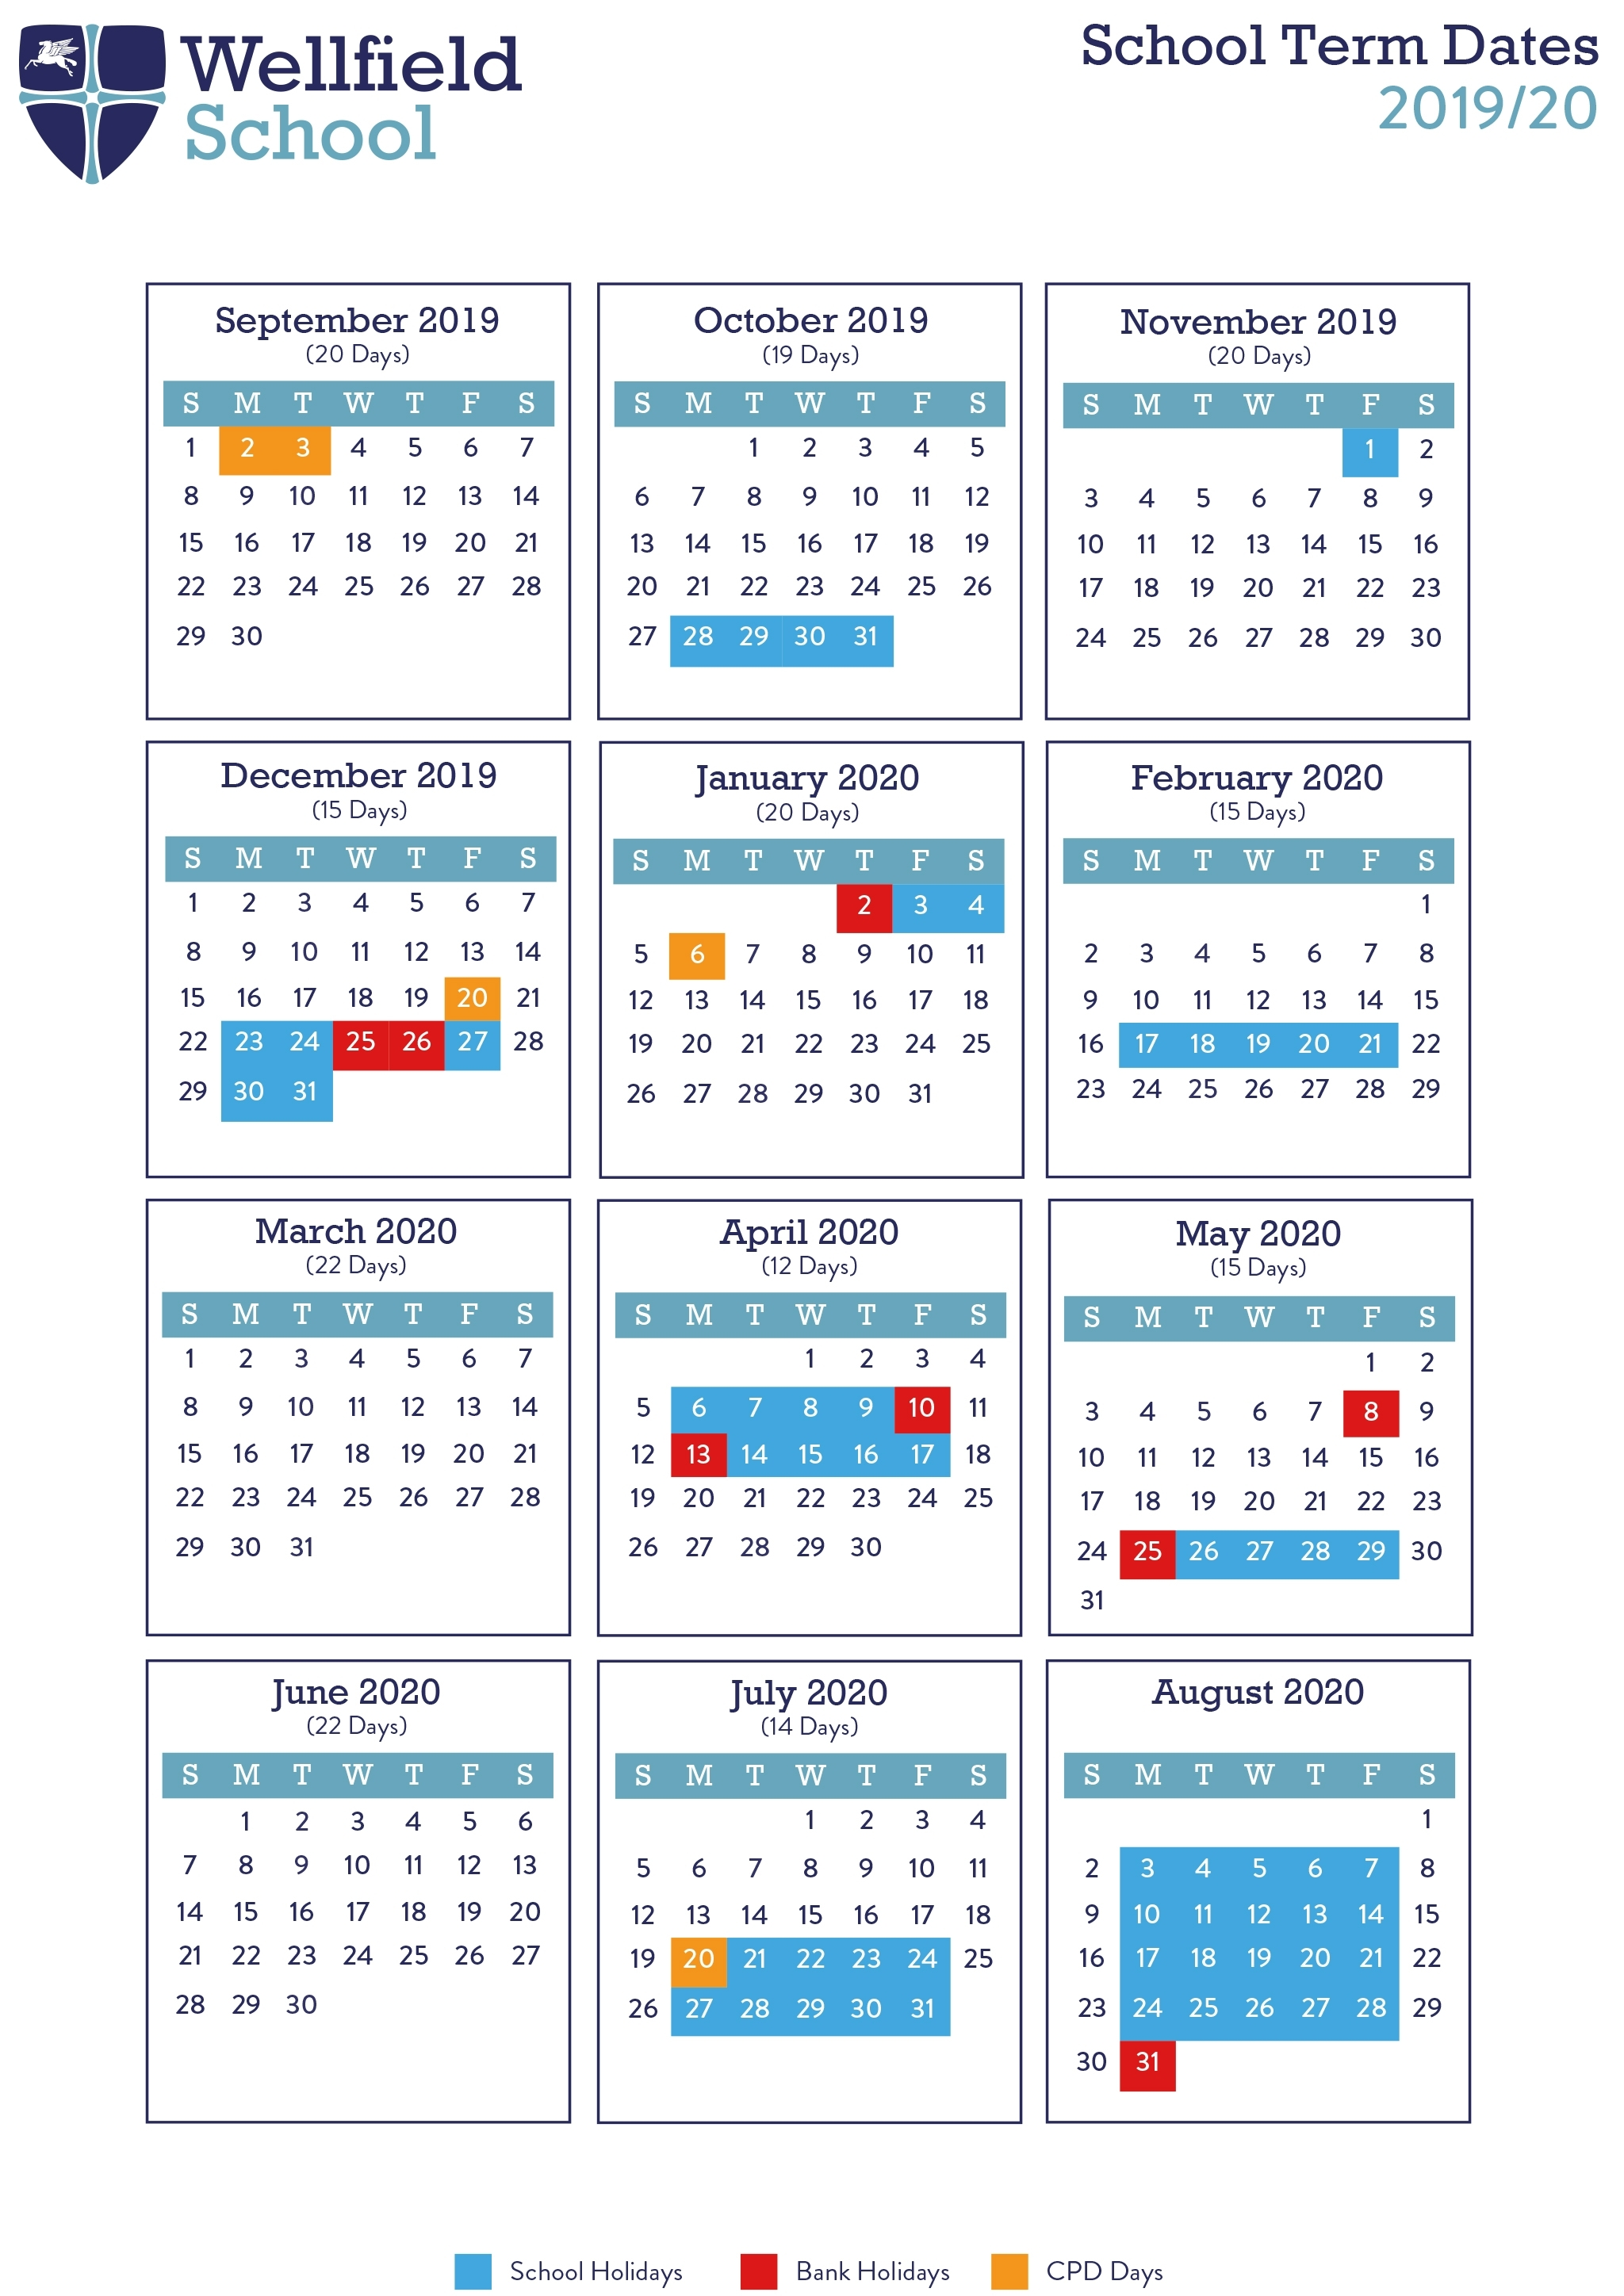 Term Dates 2019/20 - Wellfield School in Special Dates Of The Year 2020